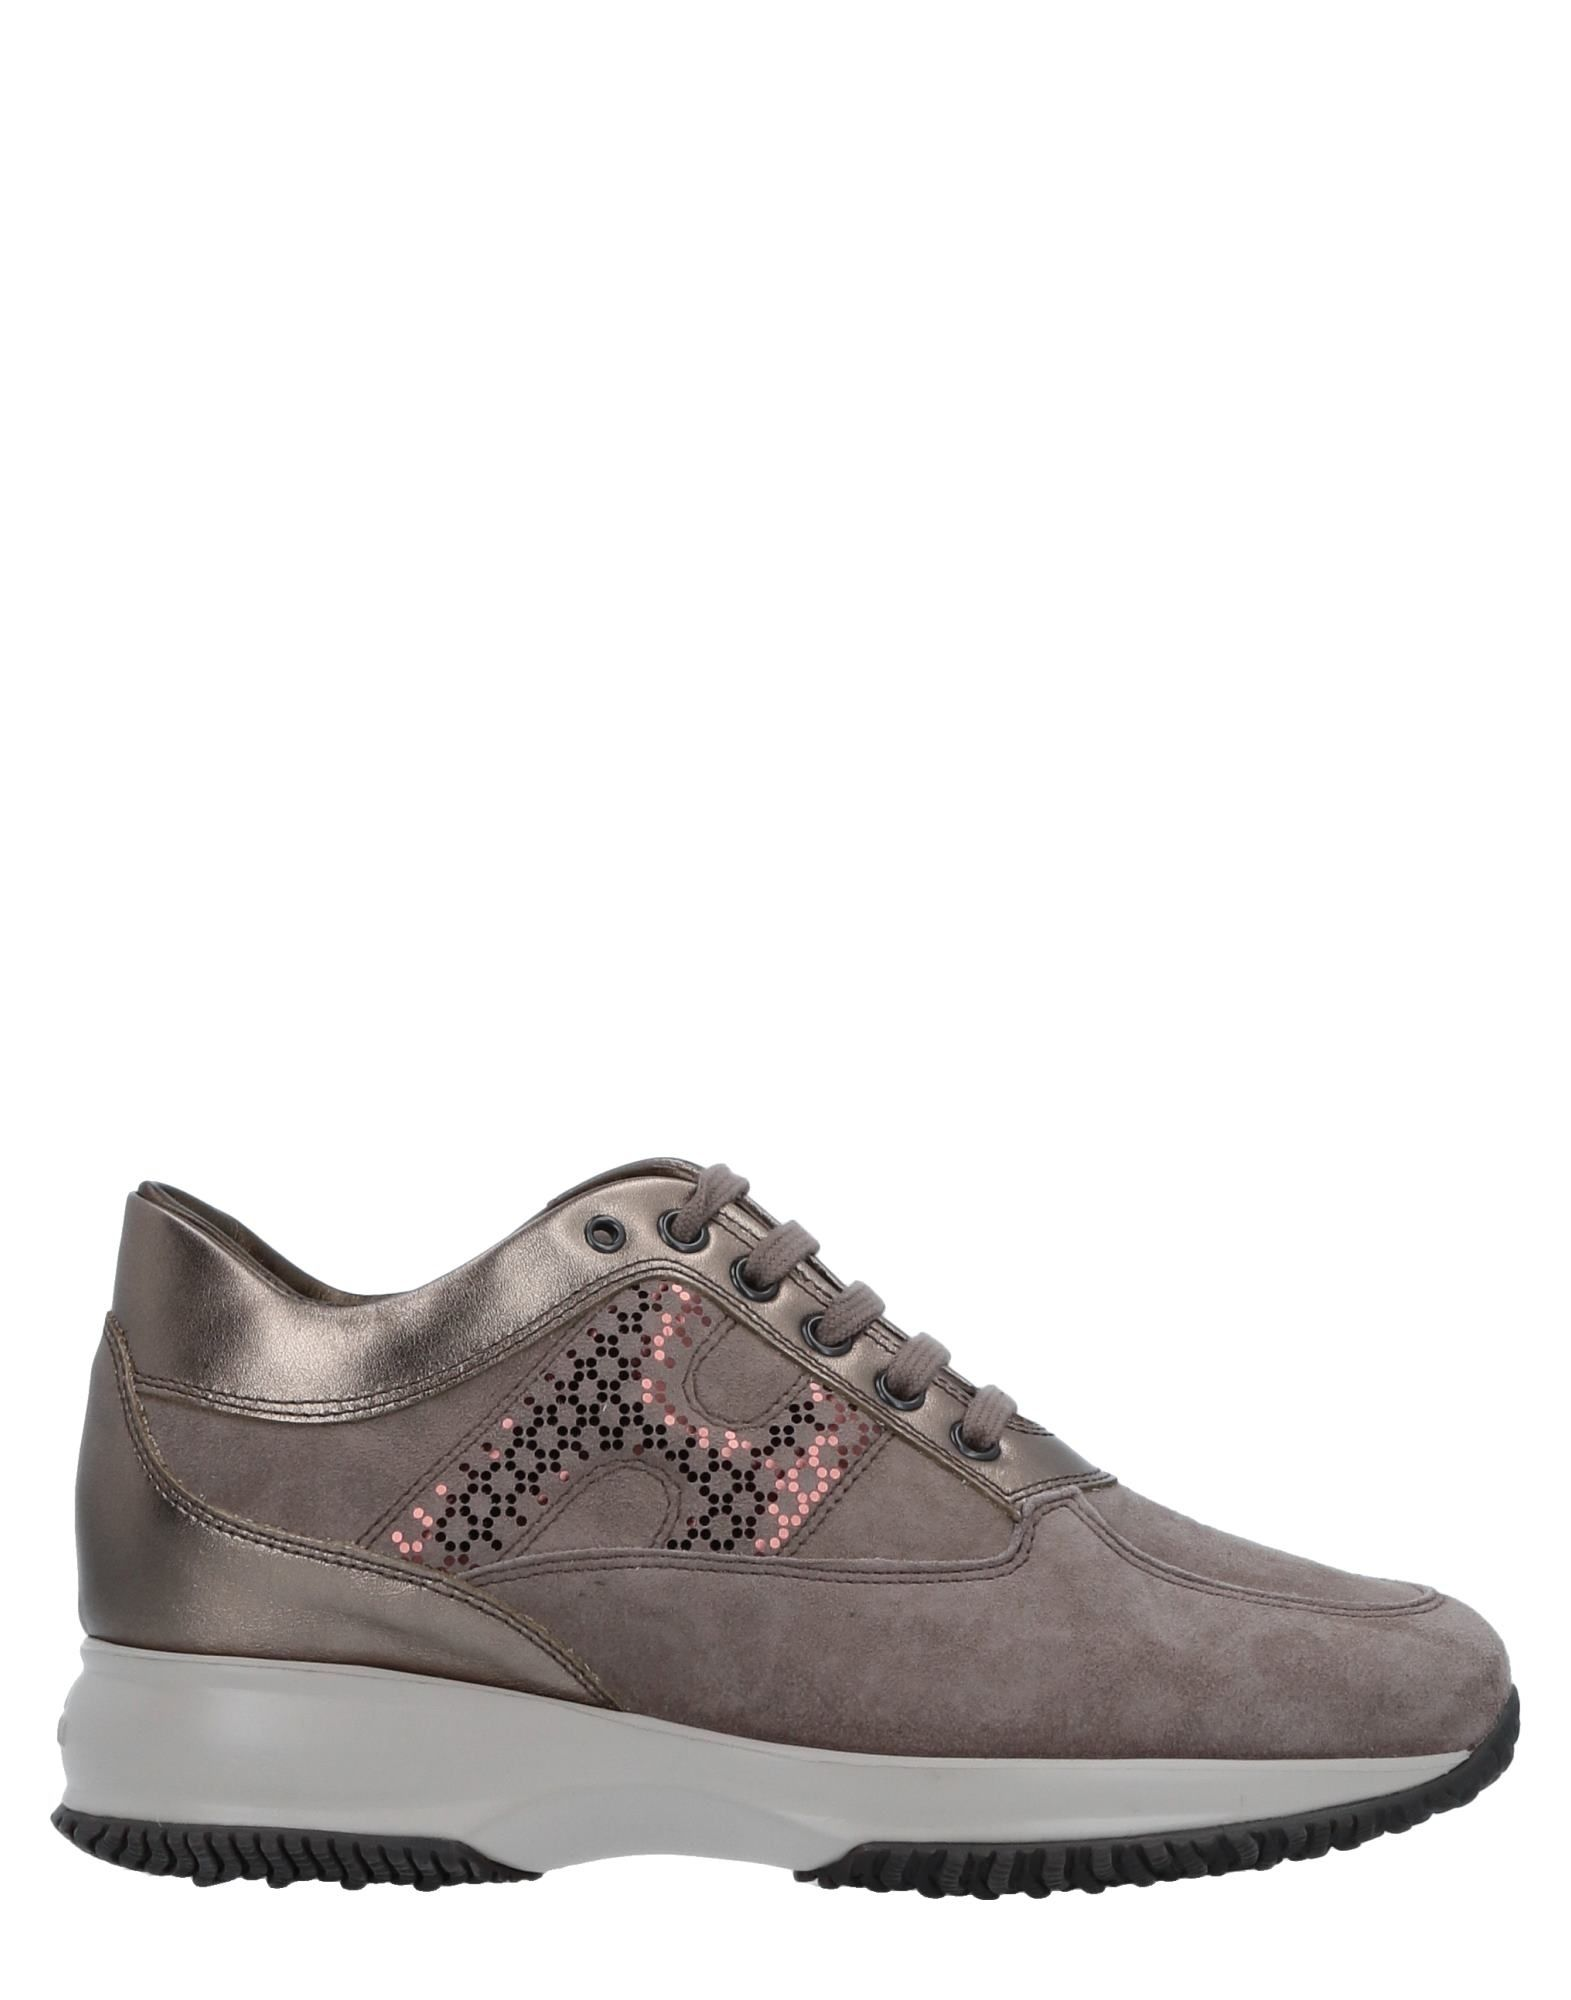 Baskets Hogan Femme - Baskets Hogan Gris clair Super rabais